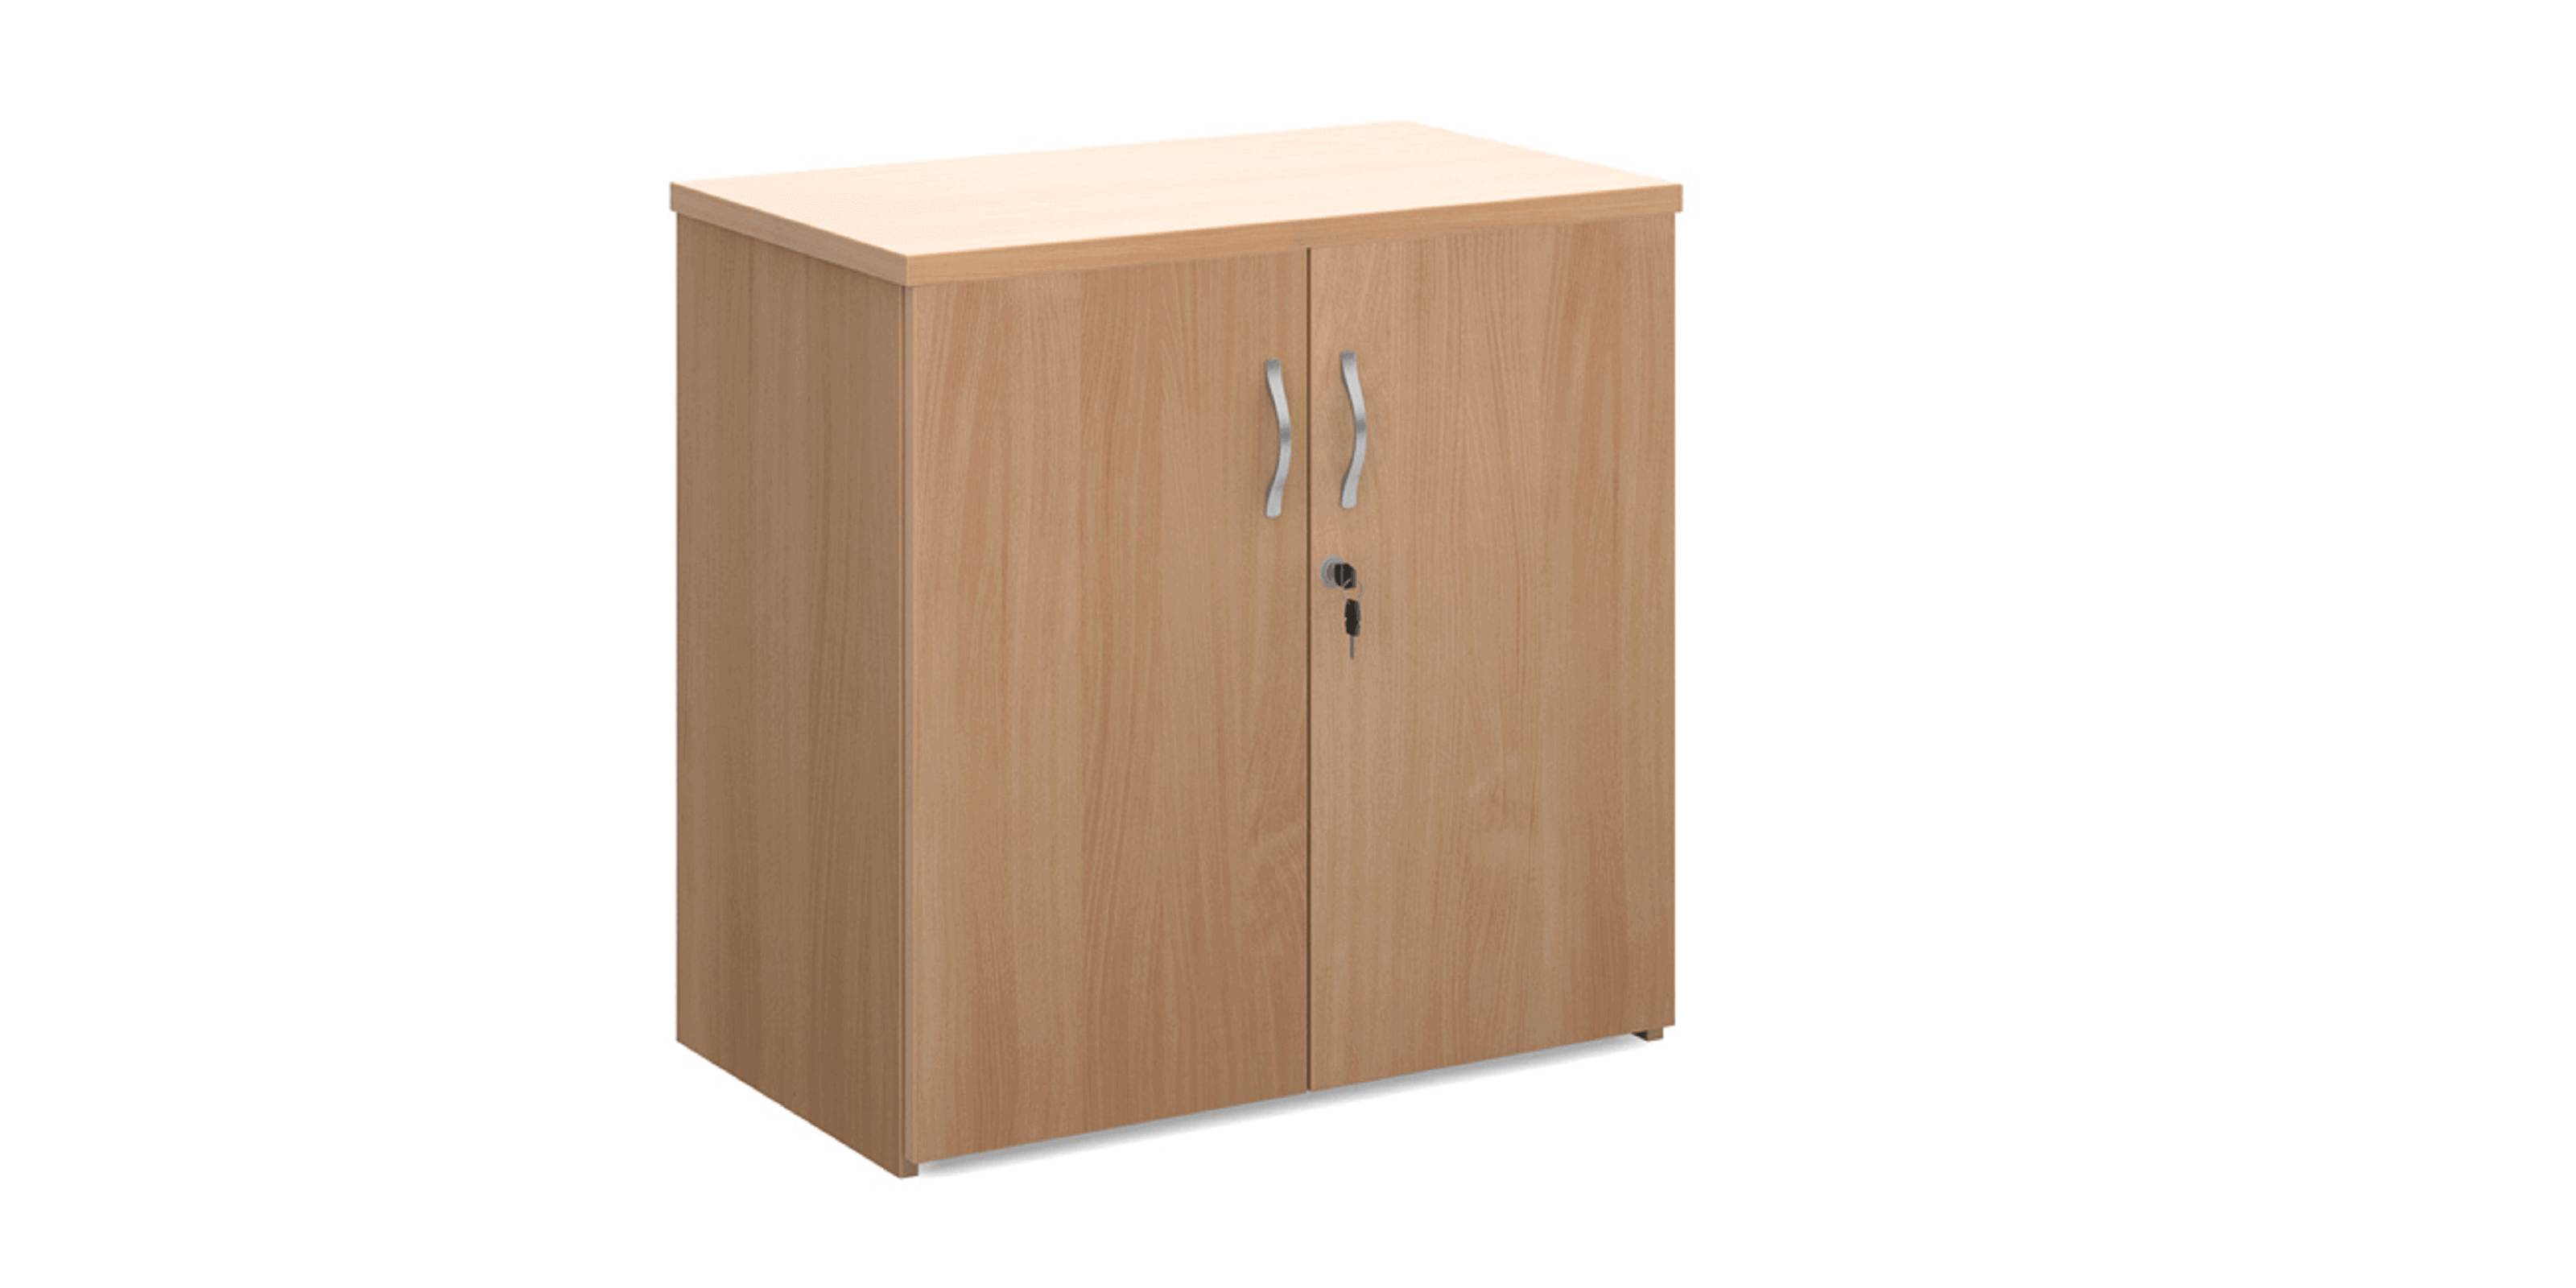 Secondary Storage Universal Cupboard Image